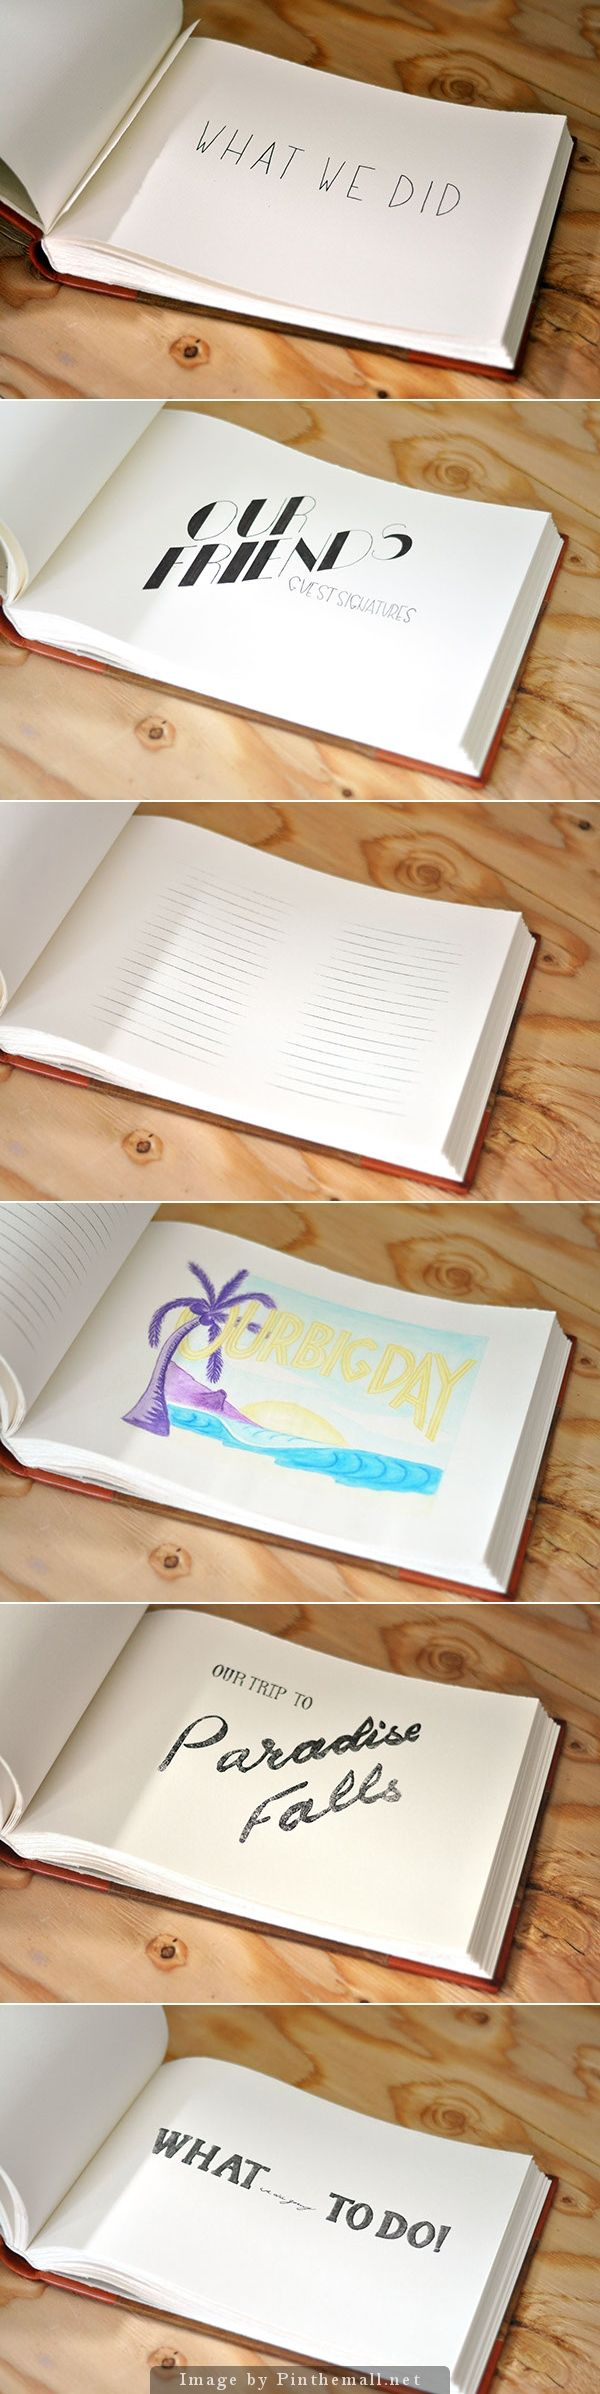 Our Adventure Book Cover Diy ~ Best up adventure book ideas on pinterest